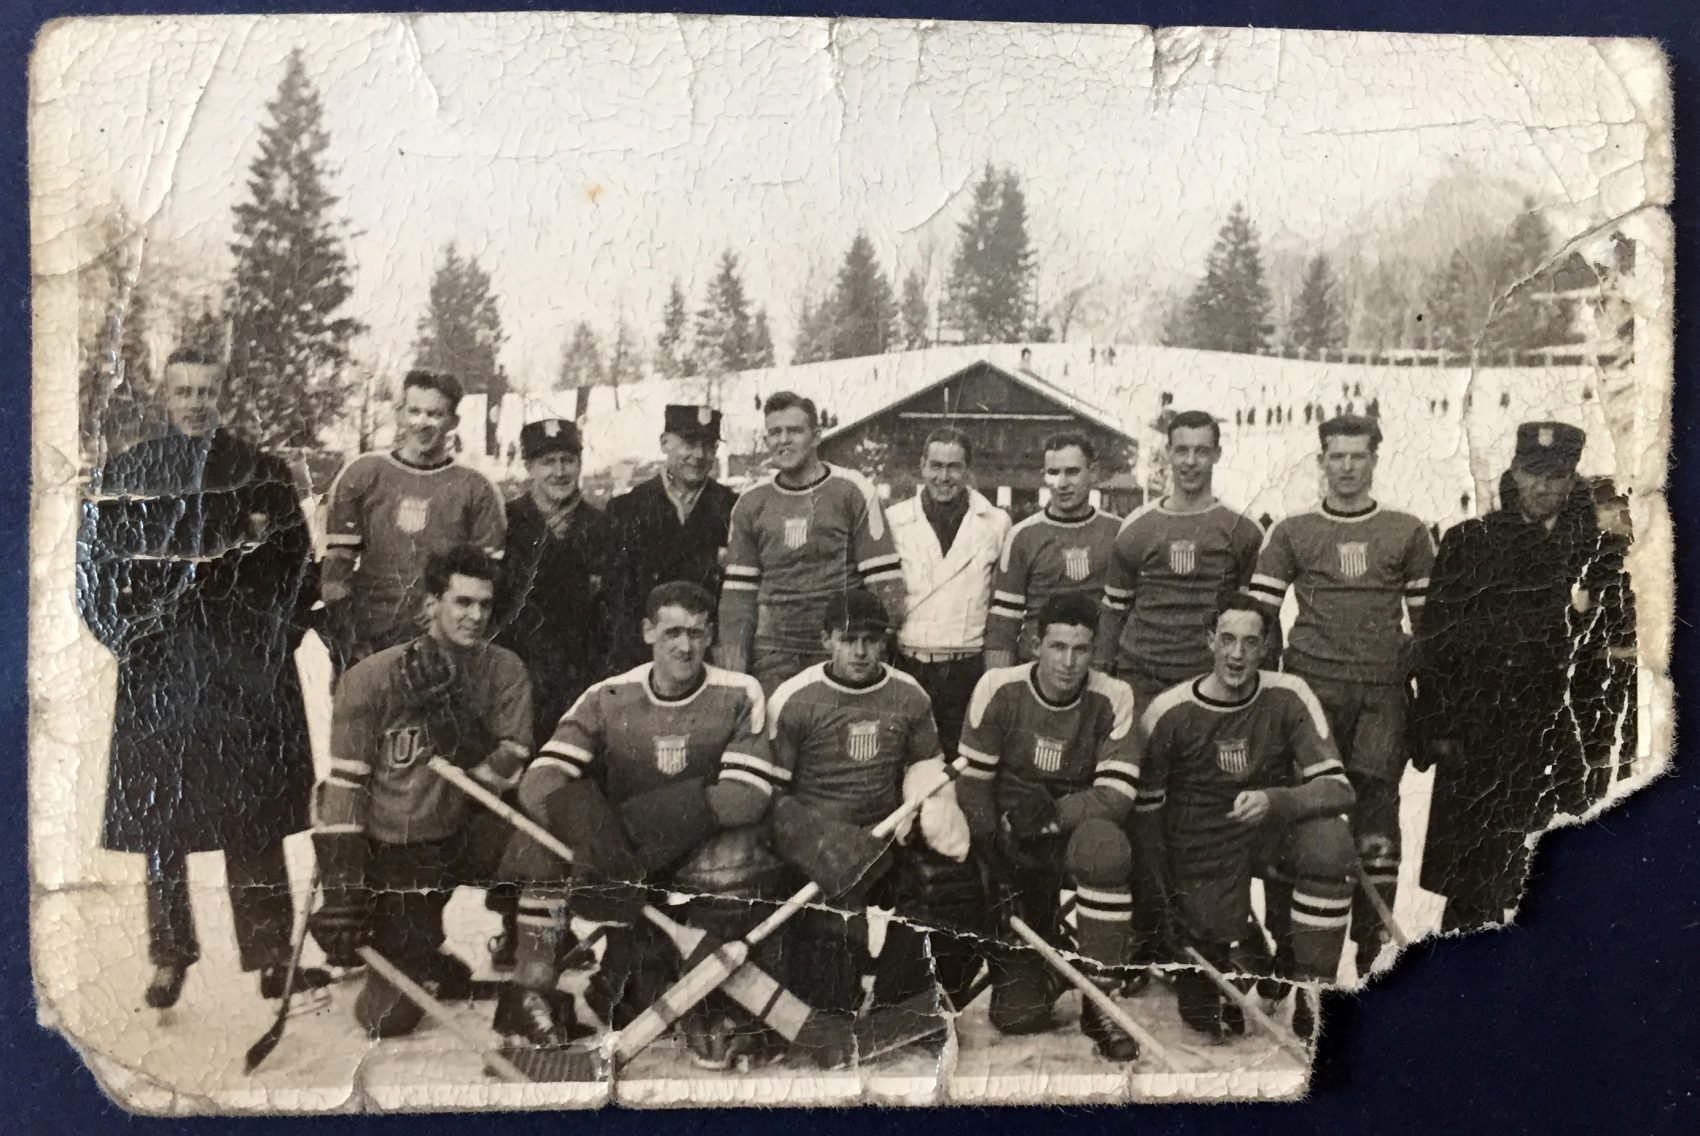 The 1936 U.S. Olympic hockey team in Germany. Francis Baker is third from the left in the front. Albert Prettyman is the fourth from the left in the back. (Courtesy Hamilton College)